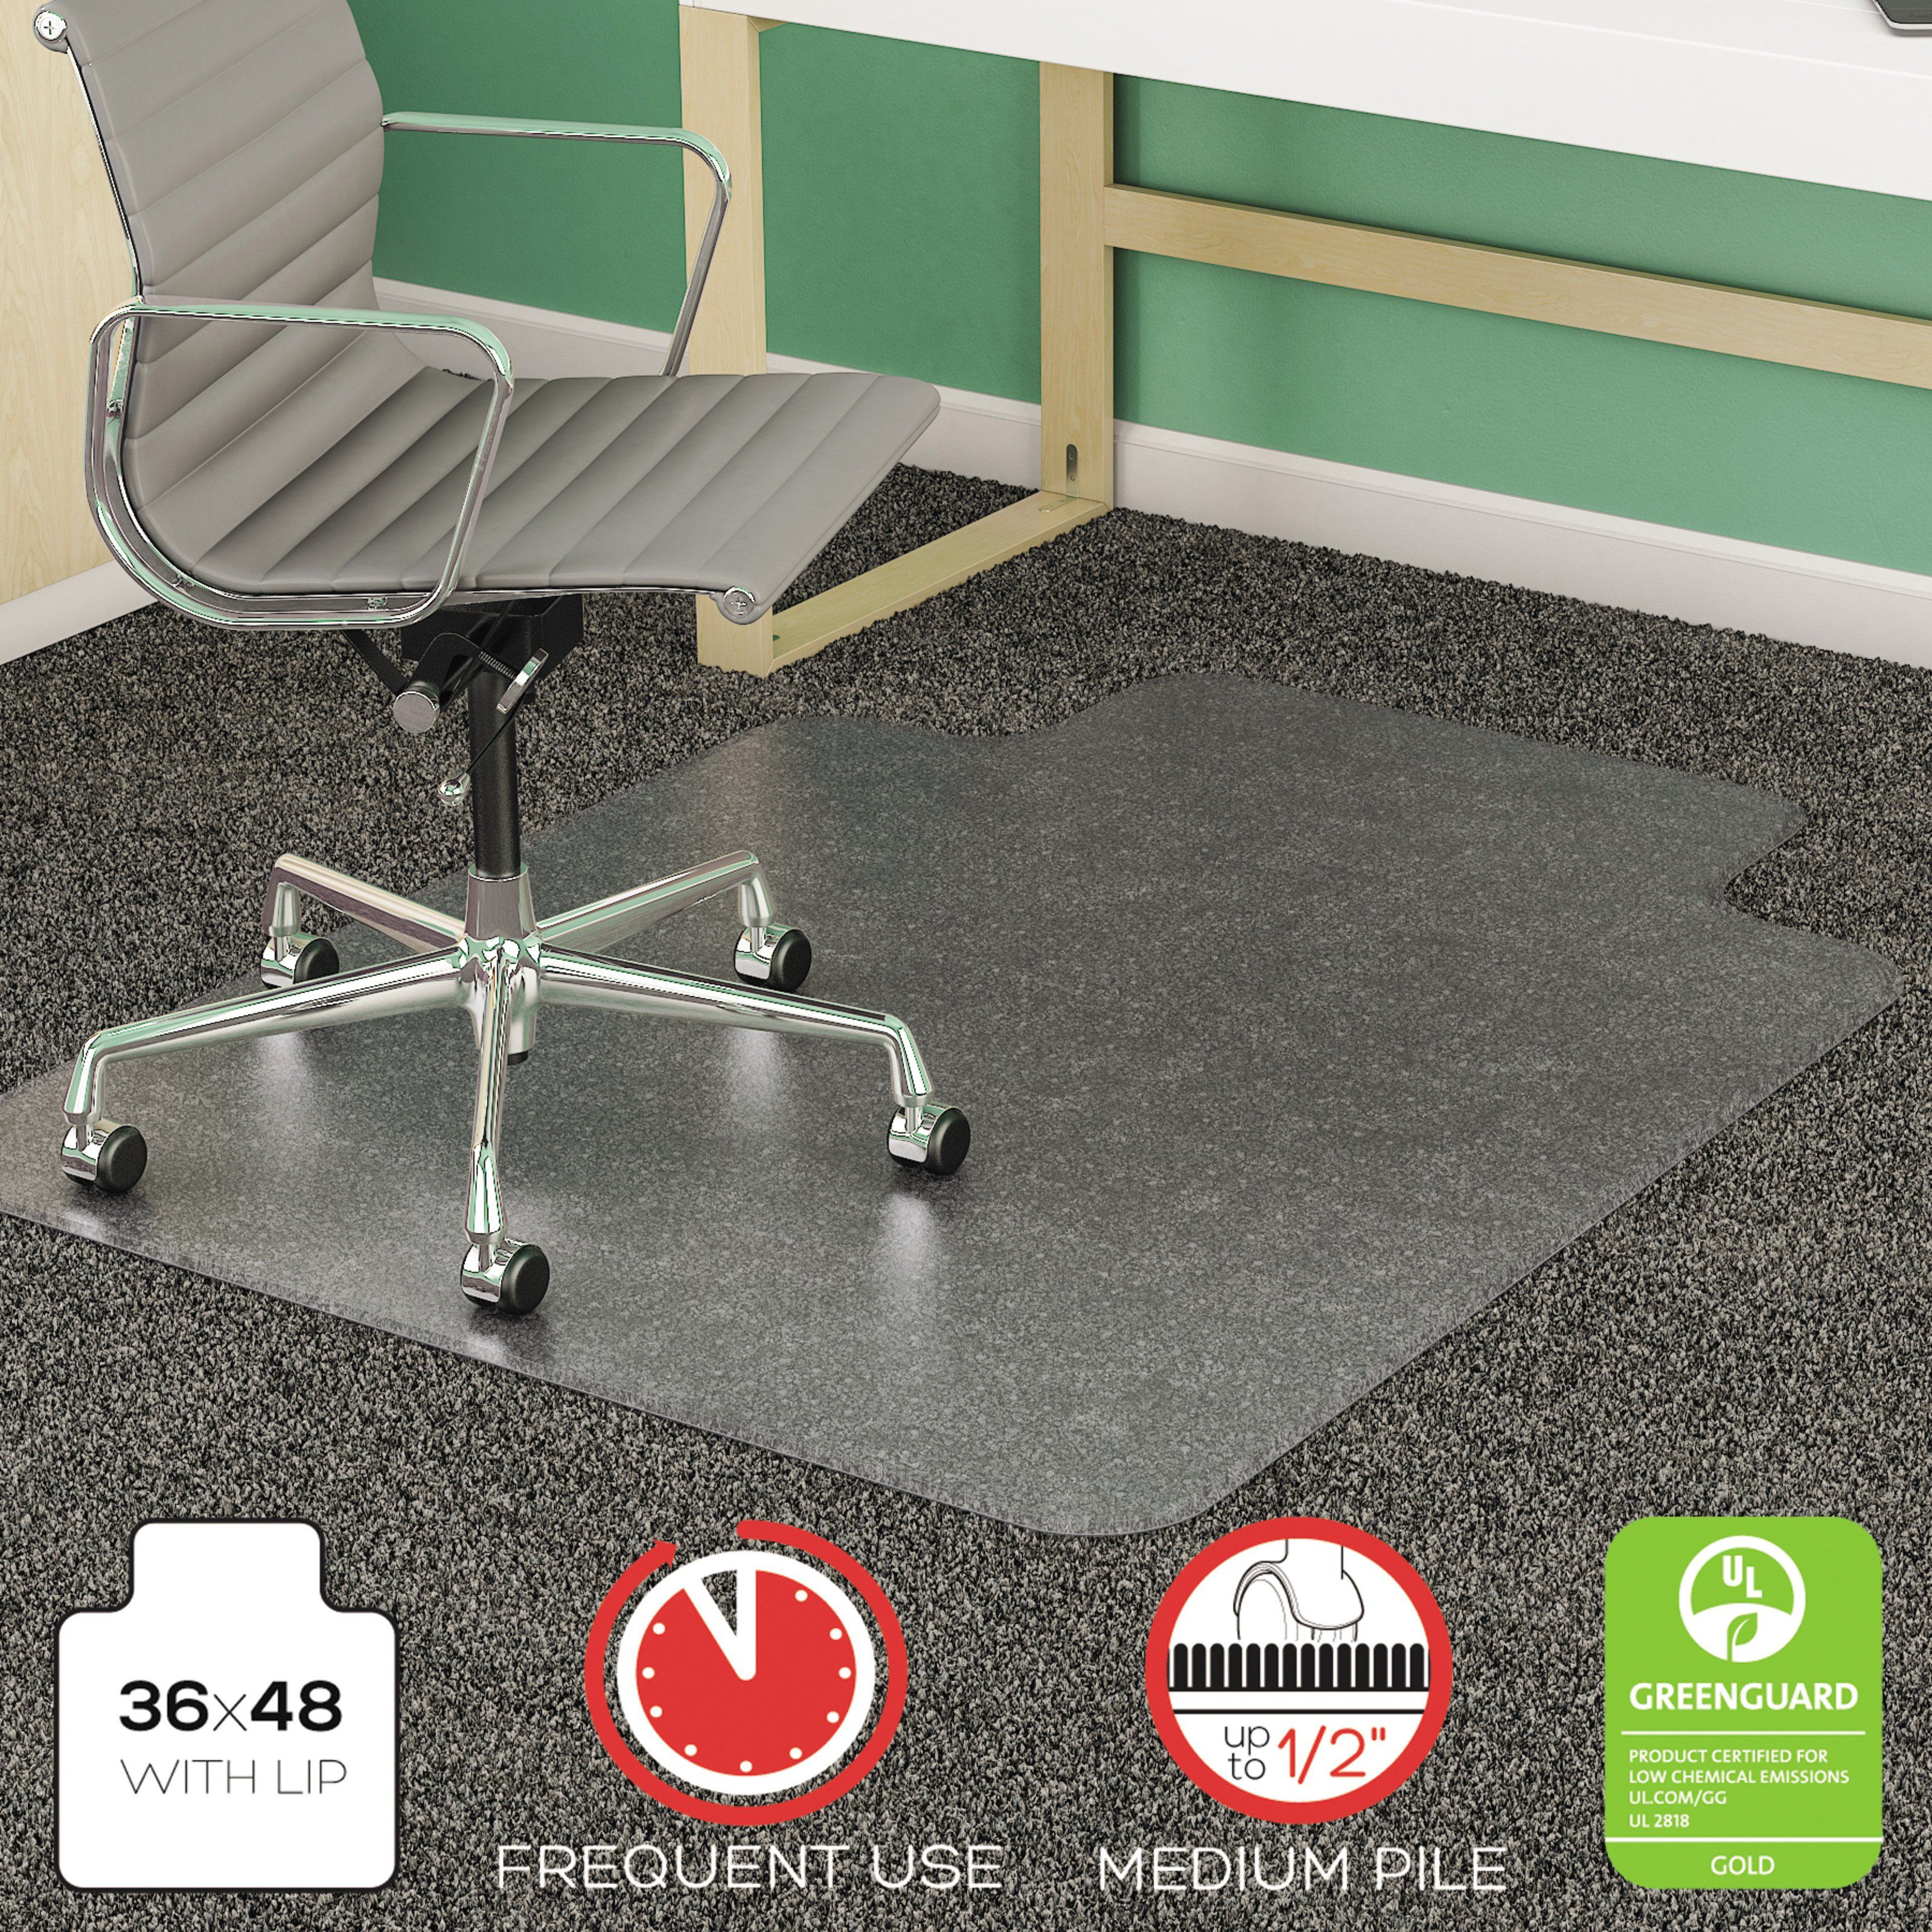 Deflect O 36 X 48 Supermat Chair Mat For Medium Pile Carpet Defcm14113 Chair Mats Clear Chairs Office Chair Mat